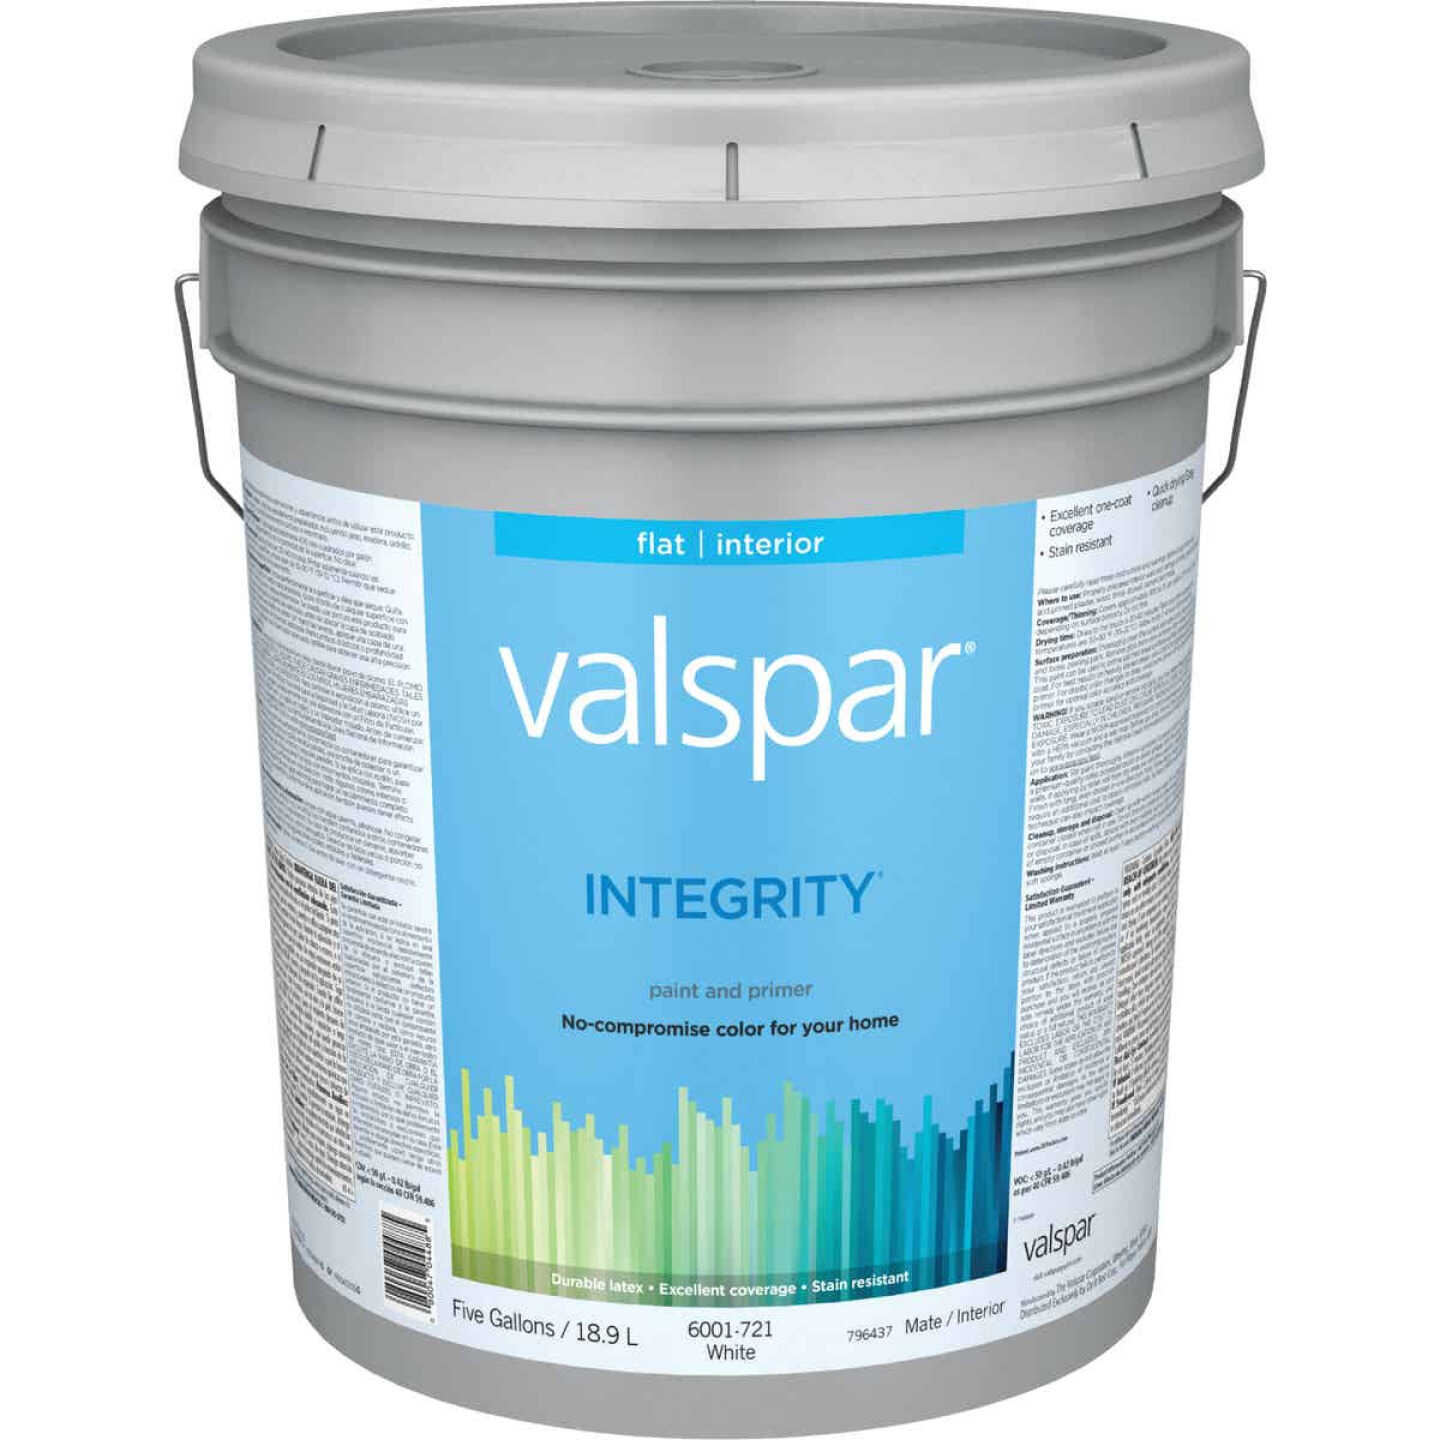 Valspar Integrity Latex Paint And Primer Flat Interior Wall Paint, White, 5 Gal. Image 1